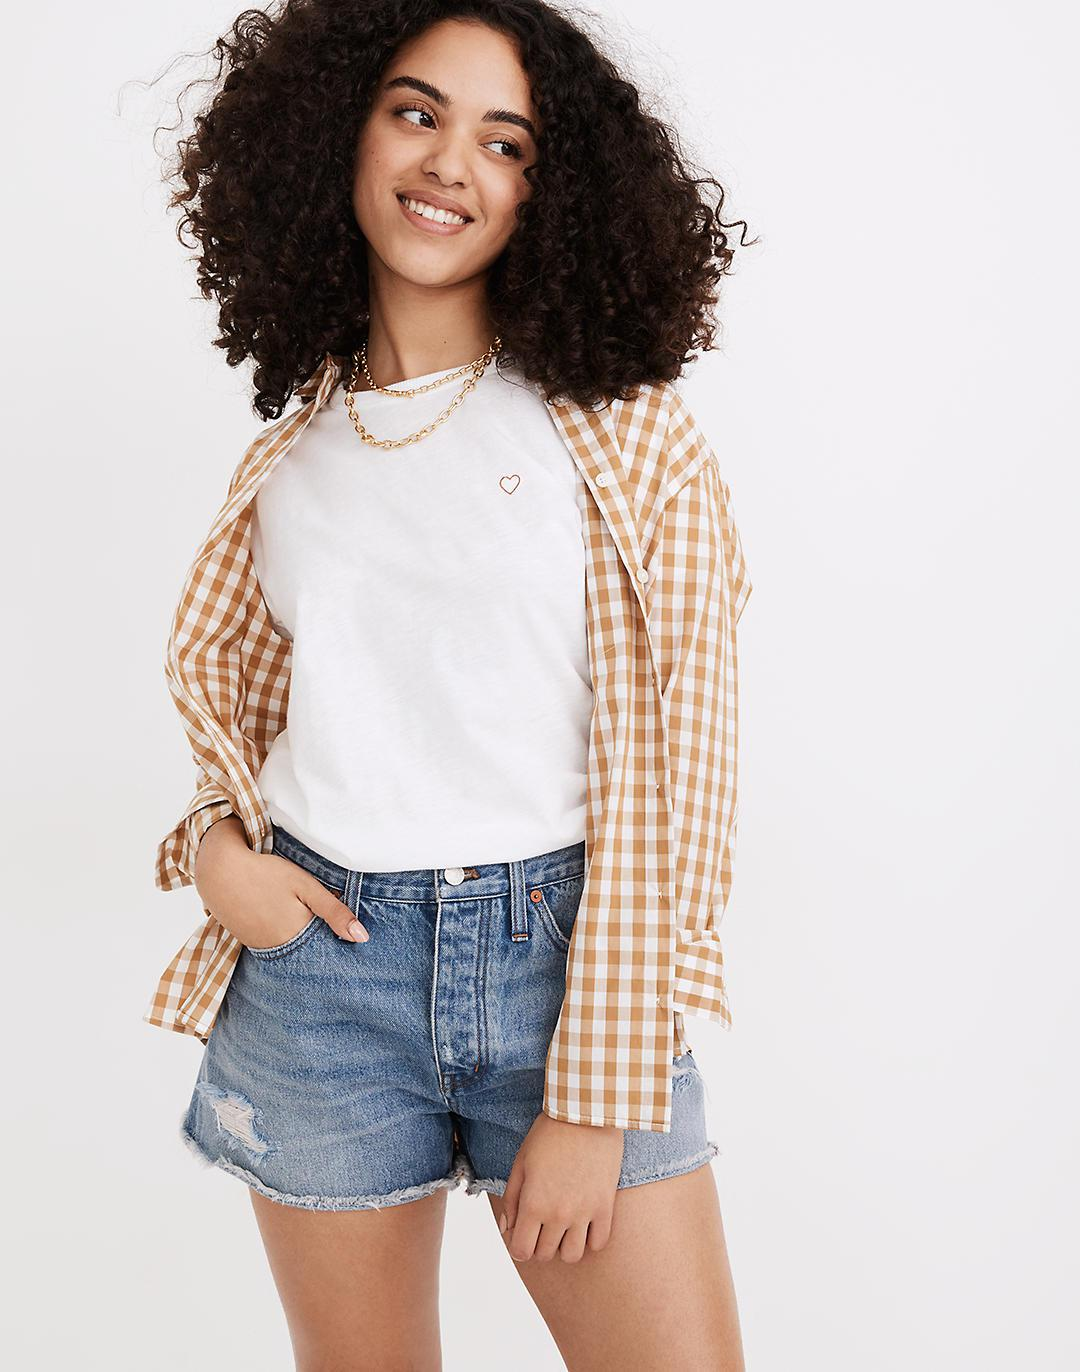 Curvy Relaxed Denim Shorts in Homecrest Wash: Ripped Edition